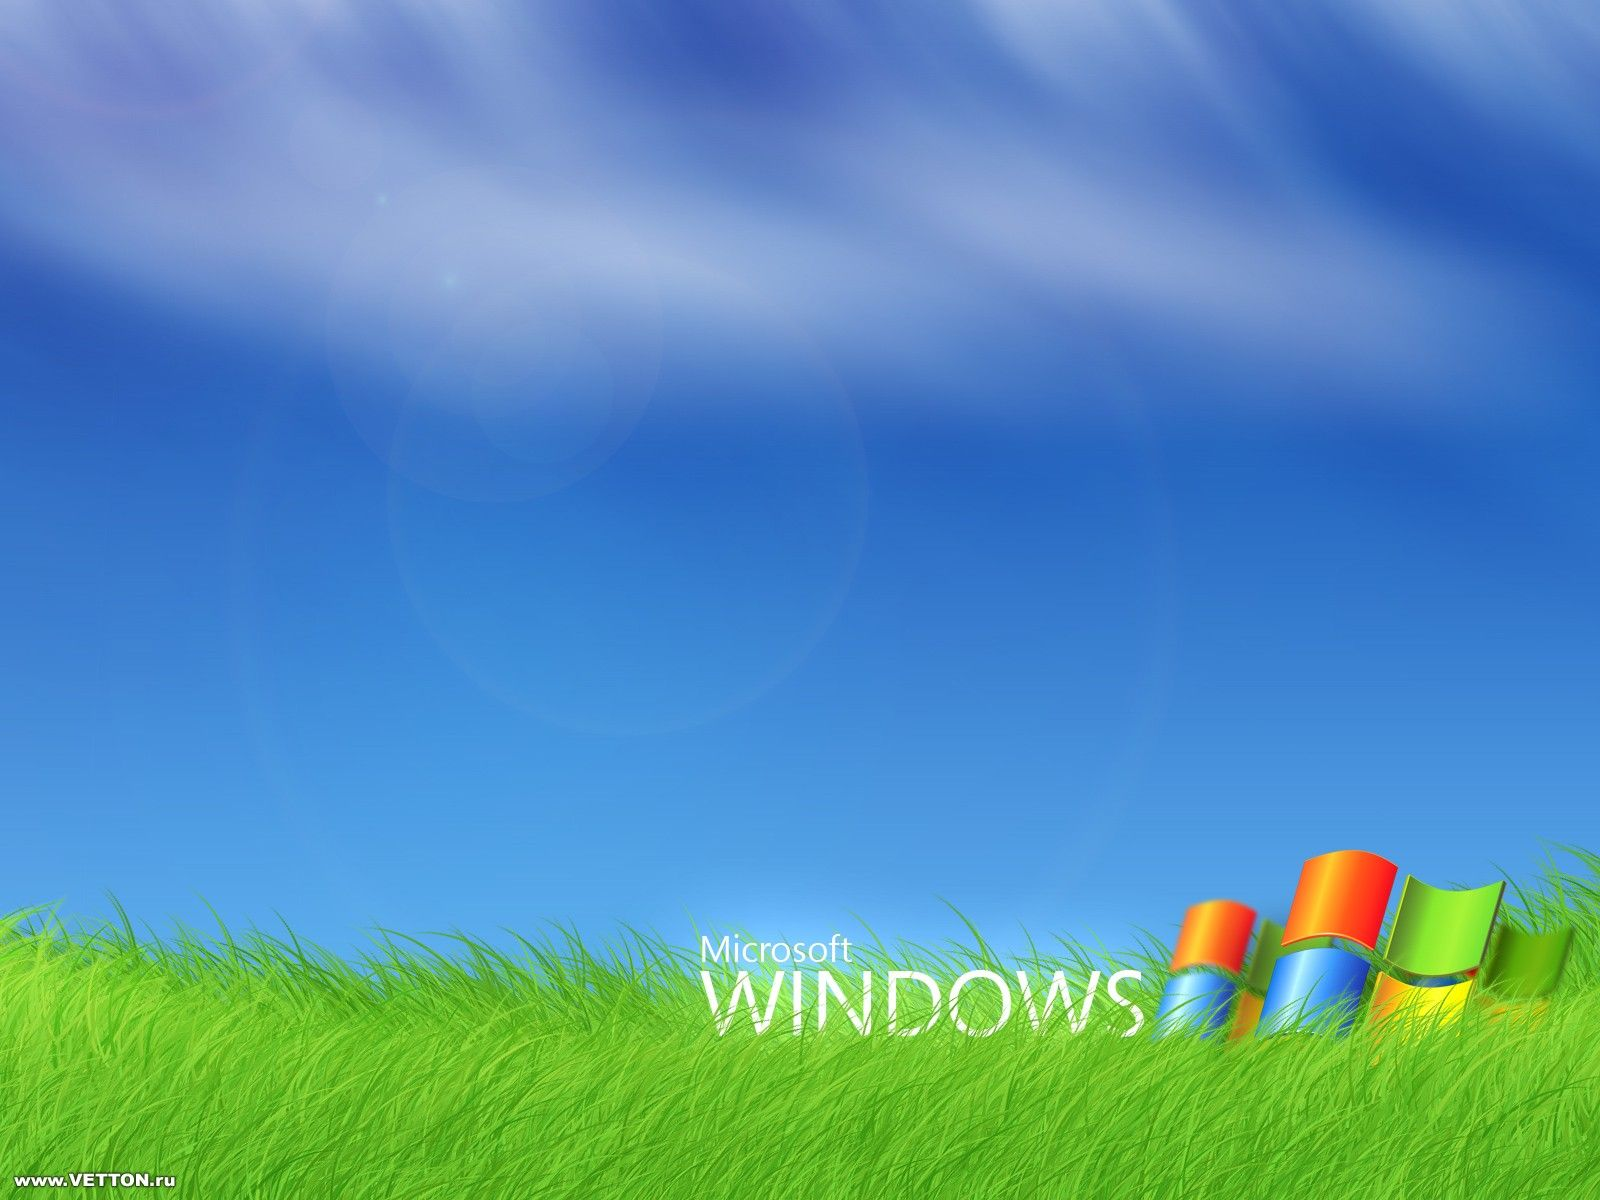 Windows xp wallpaper new